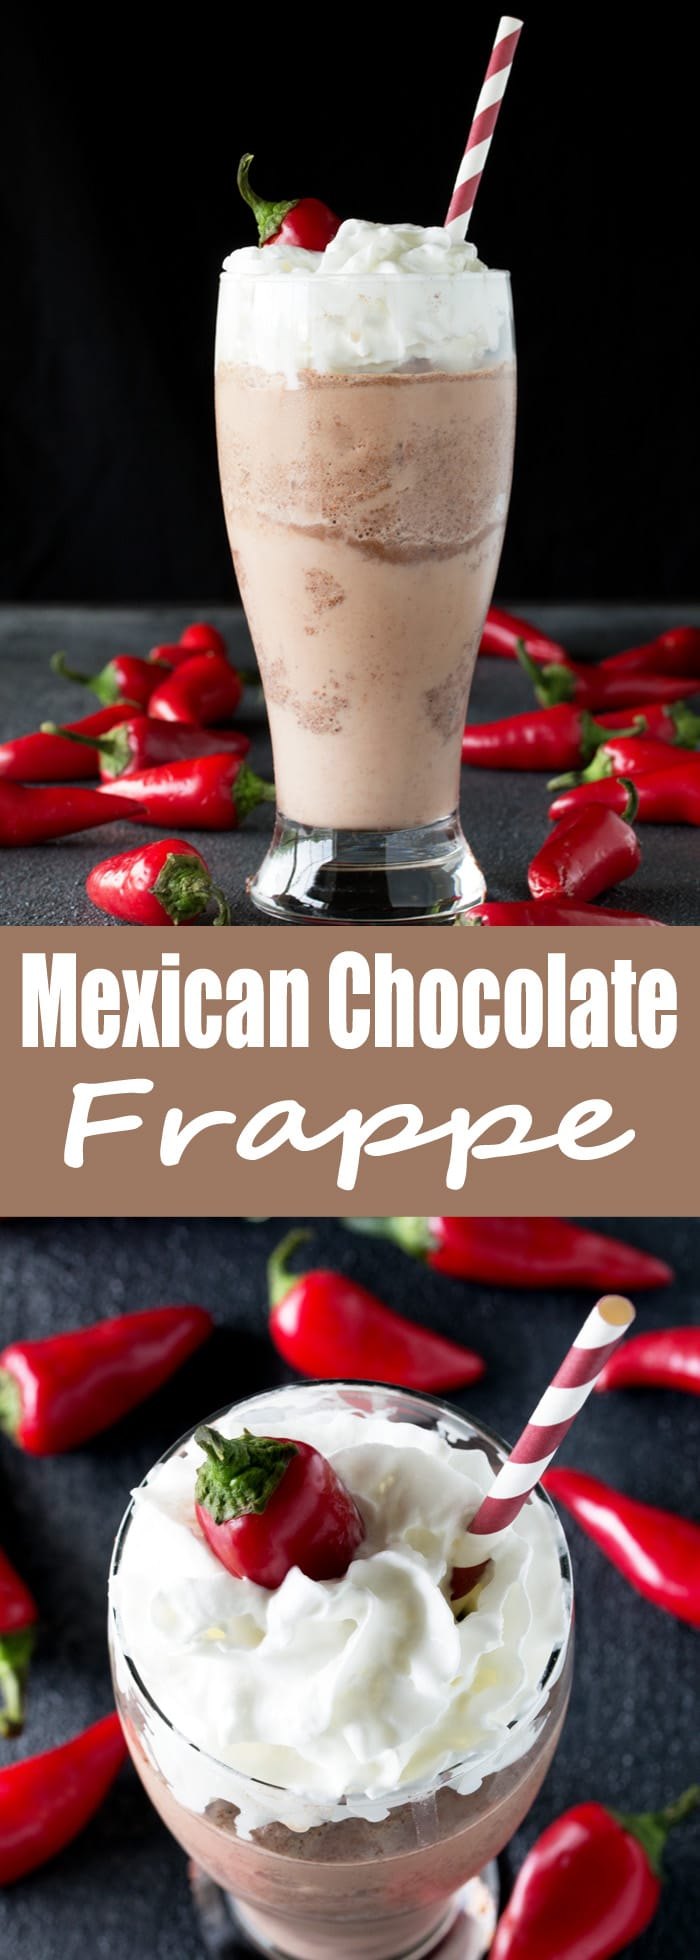 Homemade Mexican Chocolate Frappes are easy to make. This sweet, cold drink has just a bit of heat. It's the perfect summer treat.